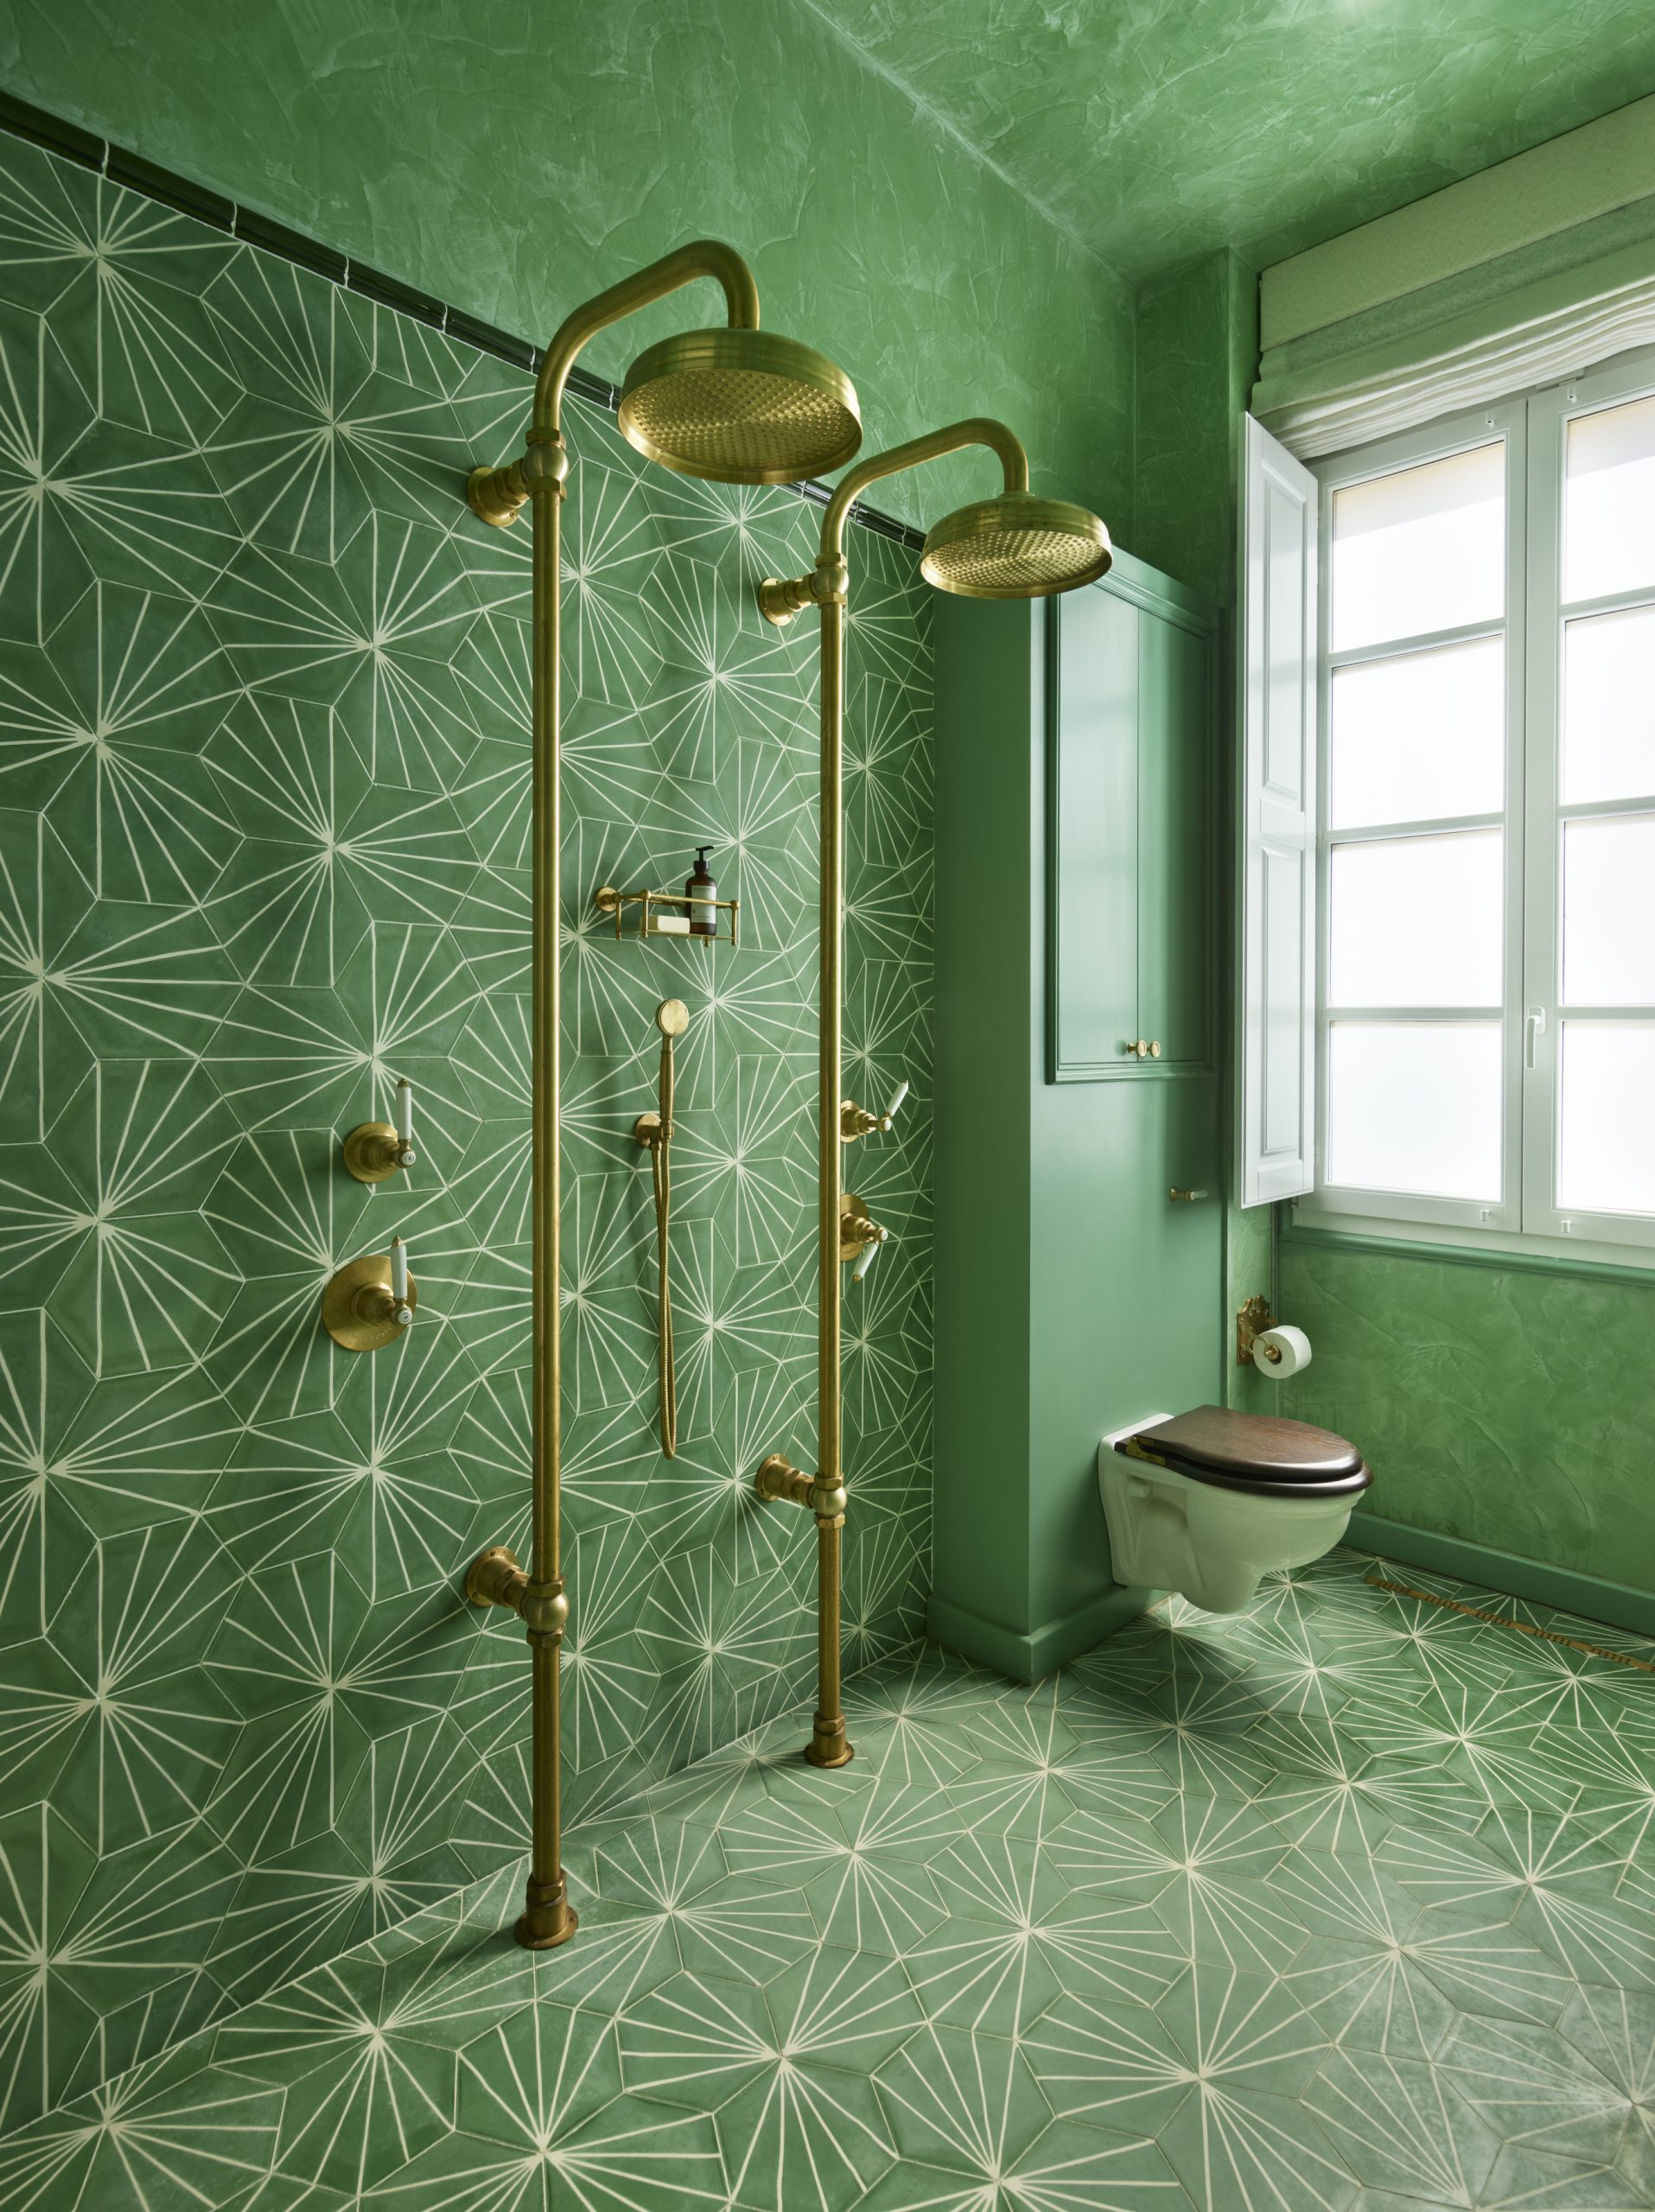 Cool Bathroom Tile Ideas From Metro Tiles To Fish Scale Herringbone Livingetc